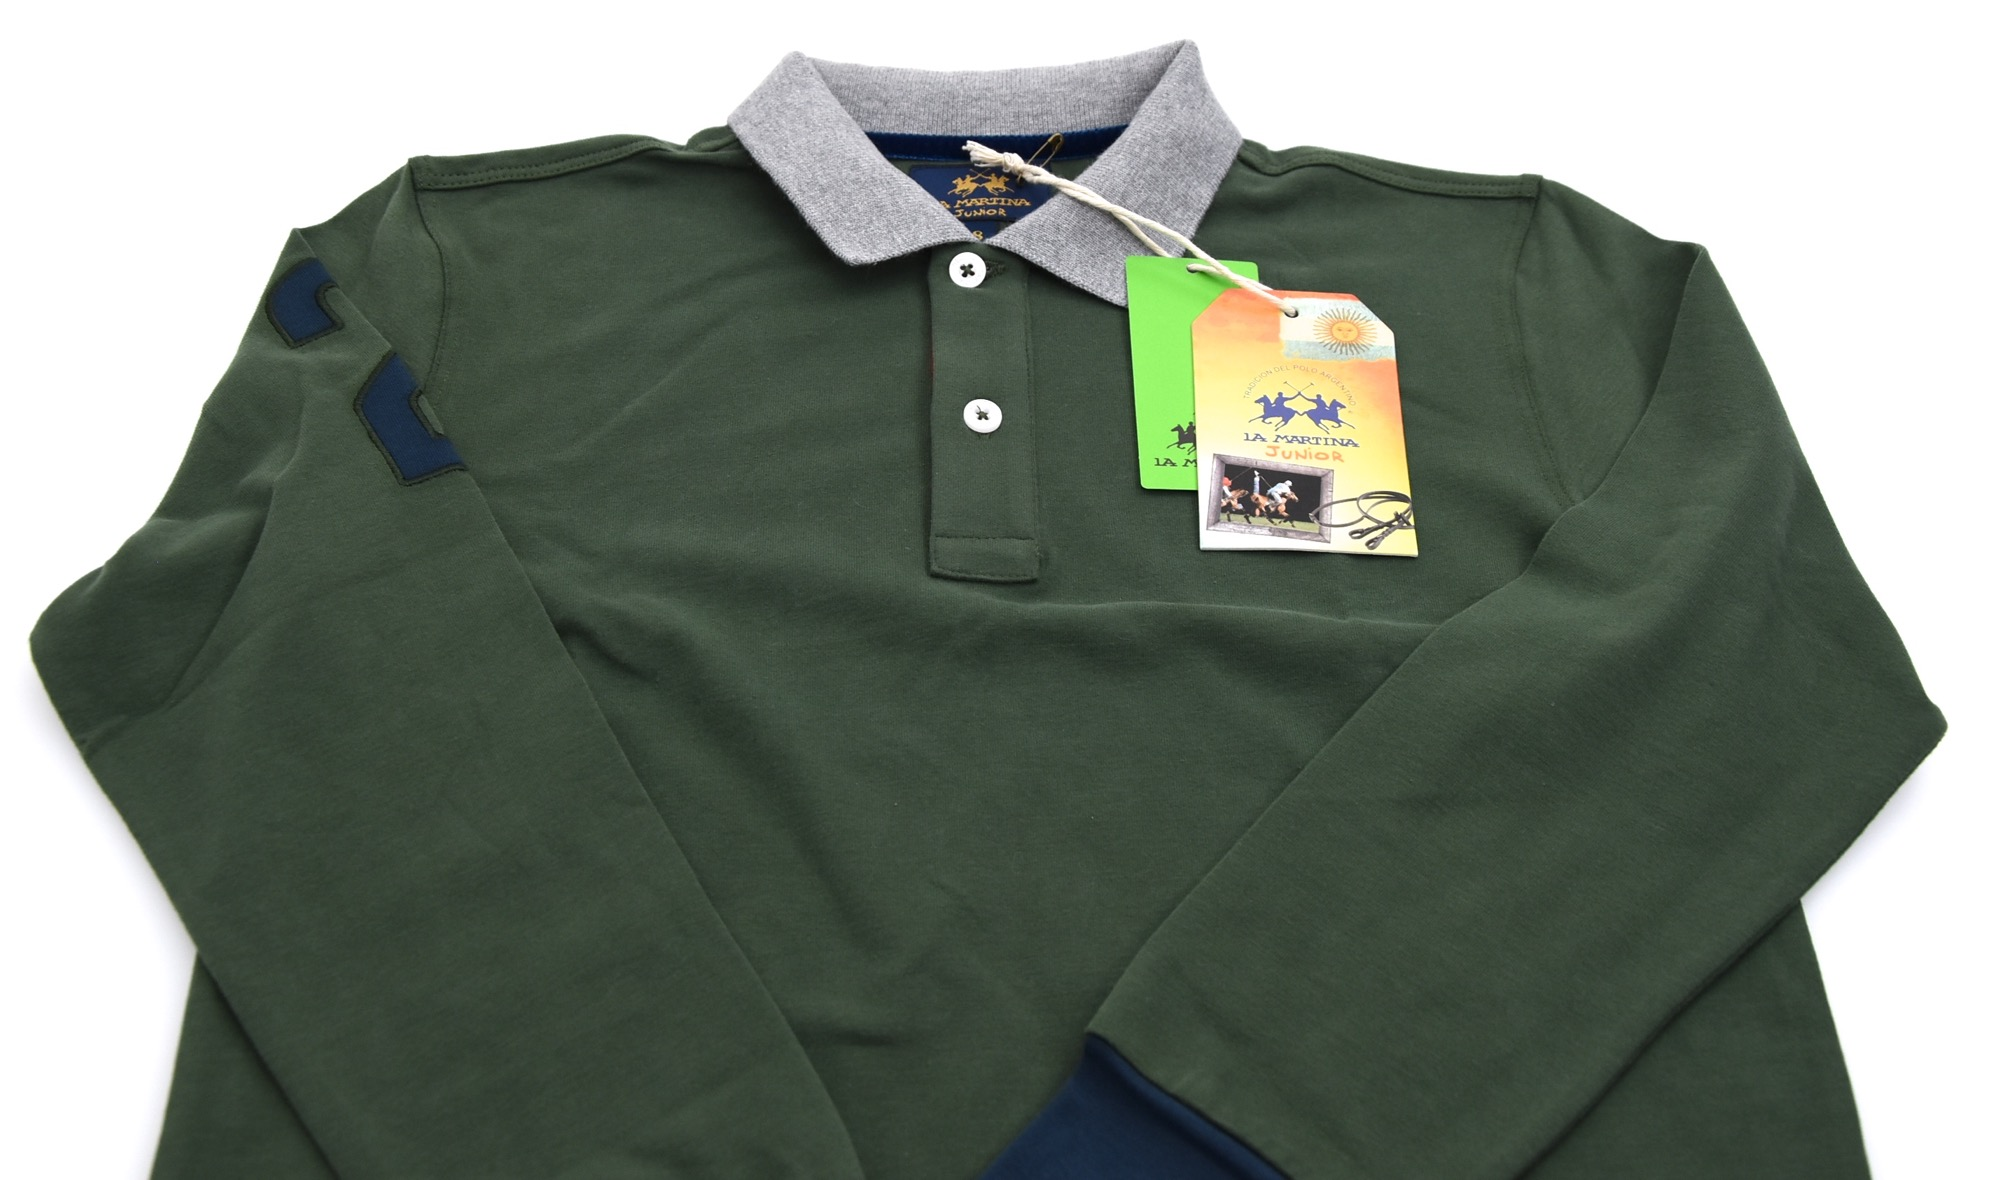 d1ec3558b LA MARTINA JUNIOR BOY POLO SHIRT LONG SLEEVE WINTER CASUAL CODE 62 A 4712